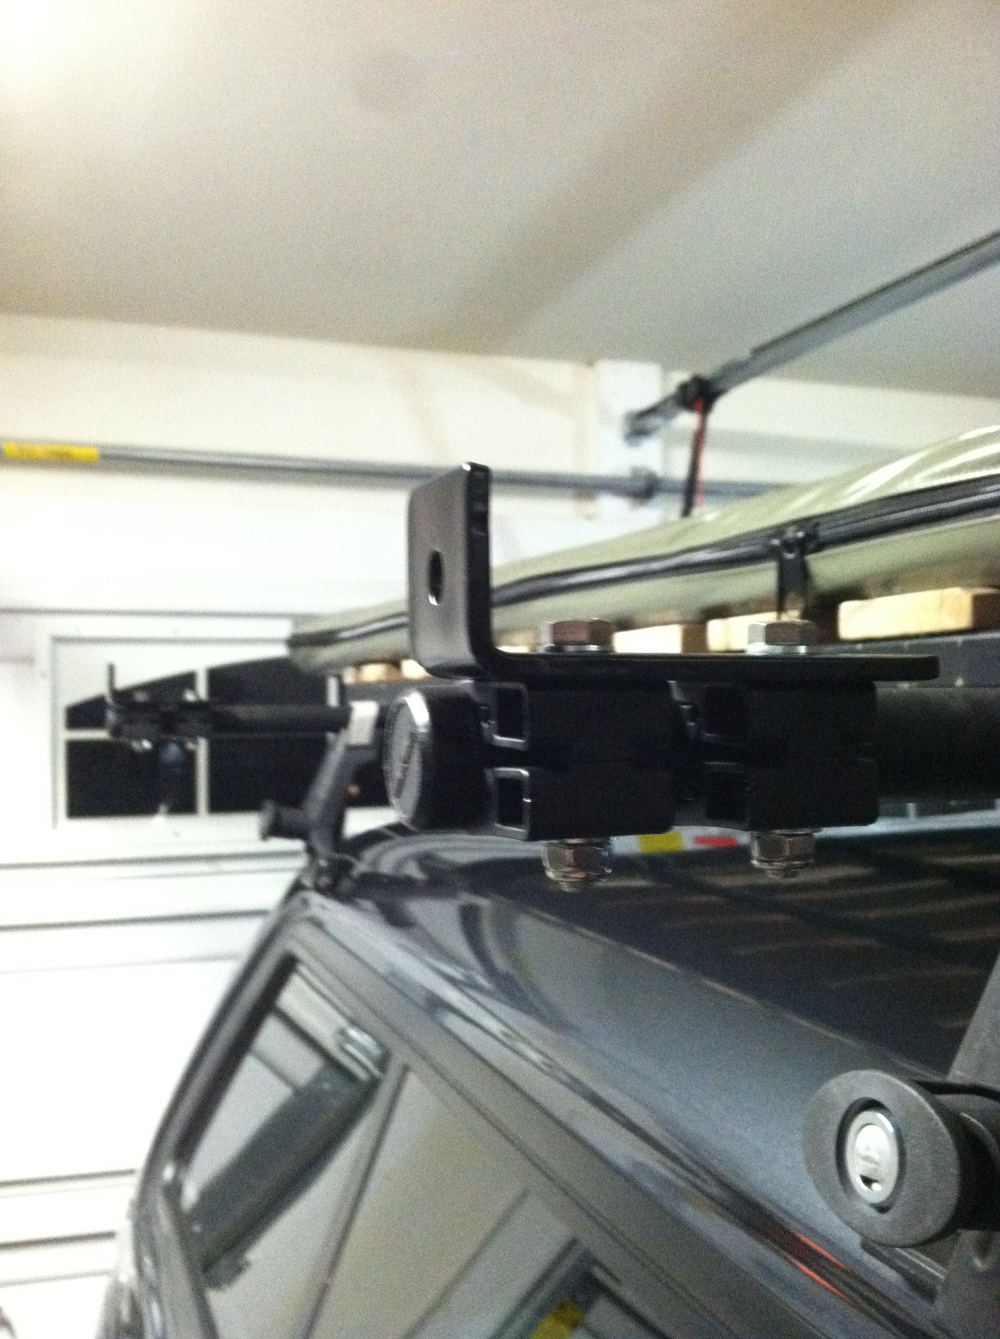 Ready for the awning.  We actually flipped the clamps over to the drivers's side after this shot.